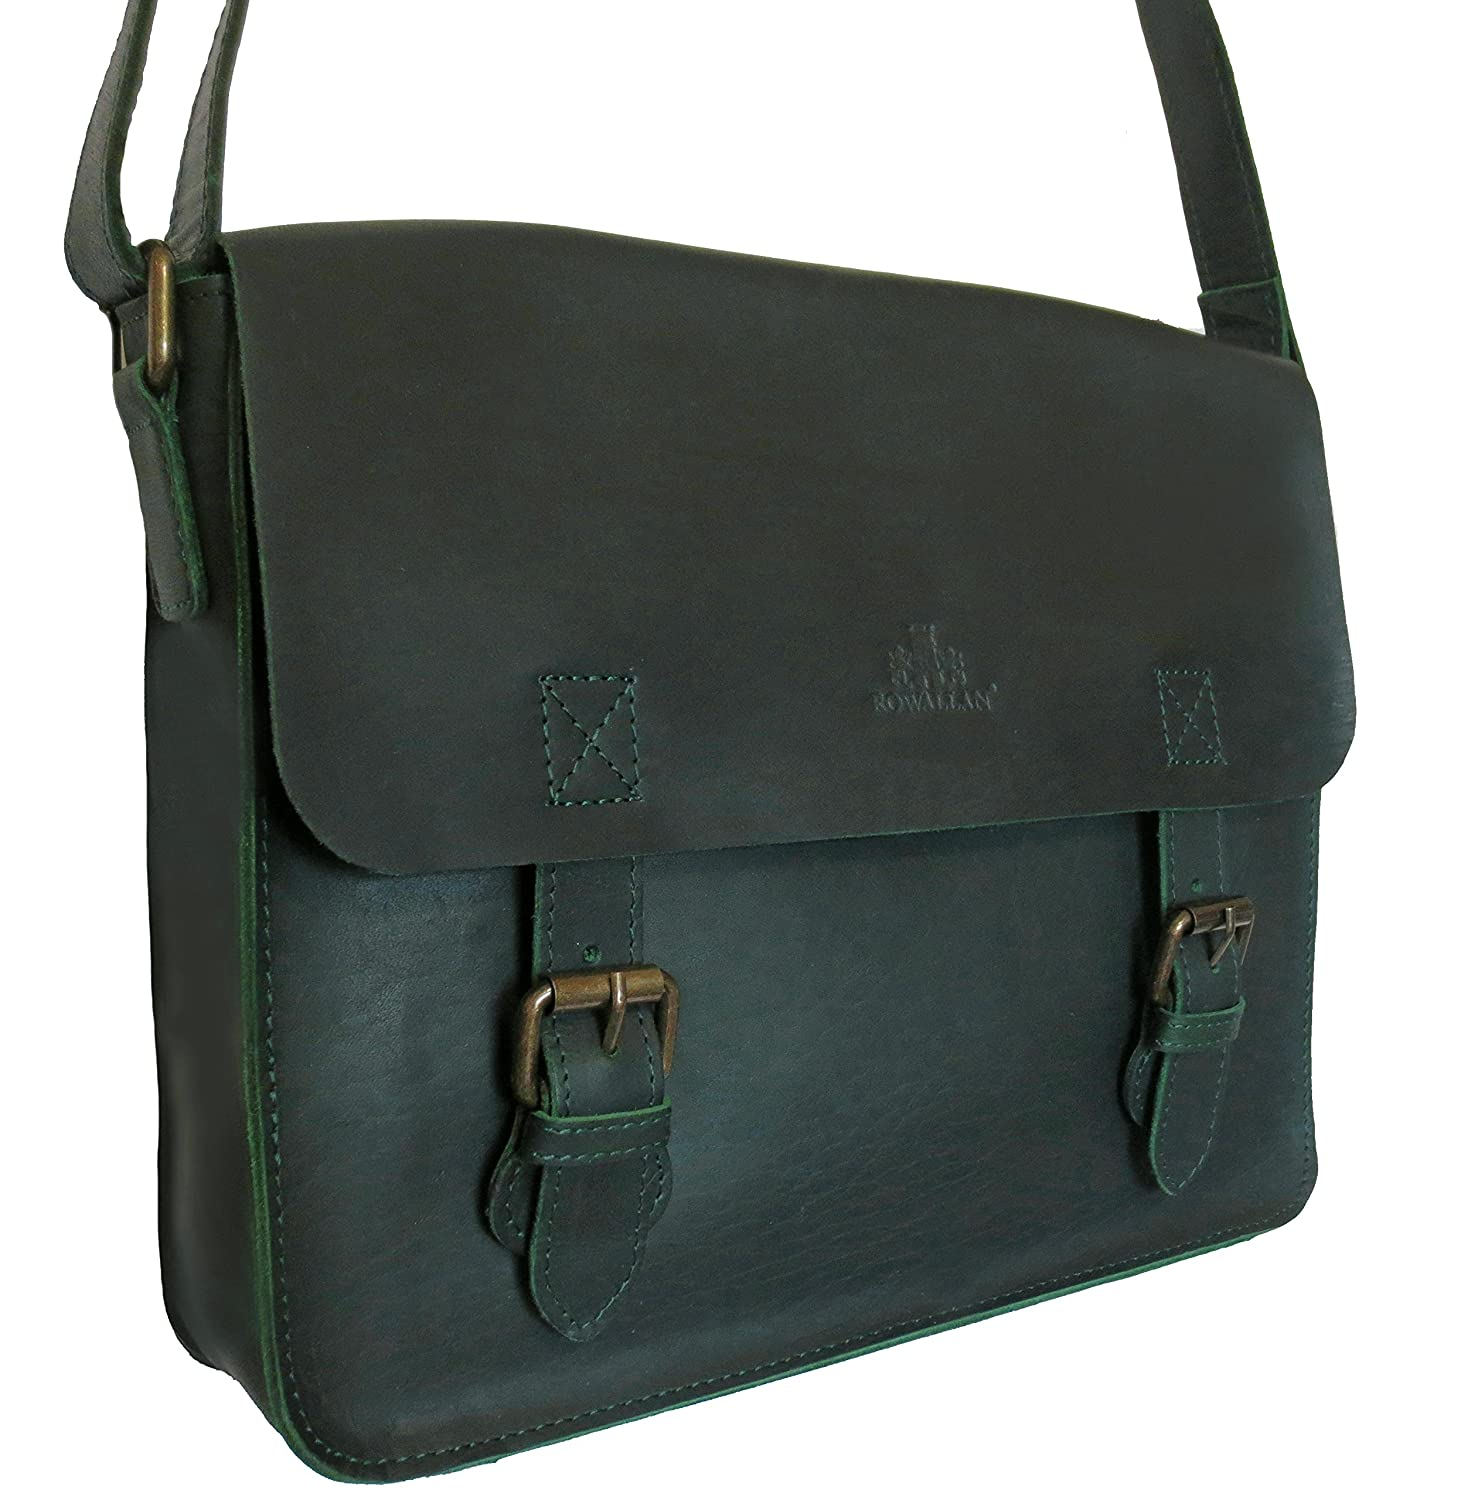 ROWALLAN GREEN BUFFALO LEATHER SATCHEL STYLE SHOULDER BAG: Amazon ...